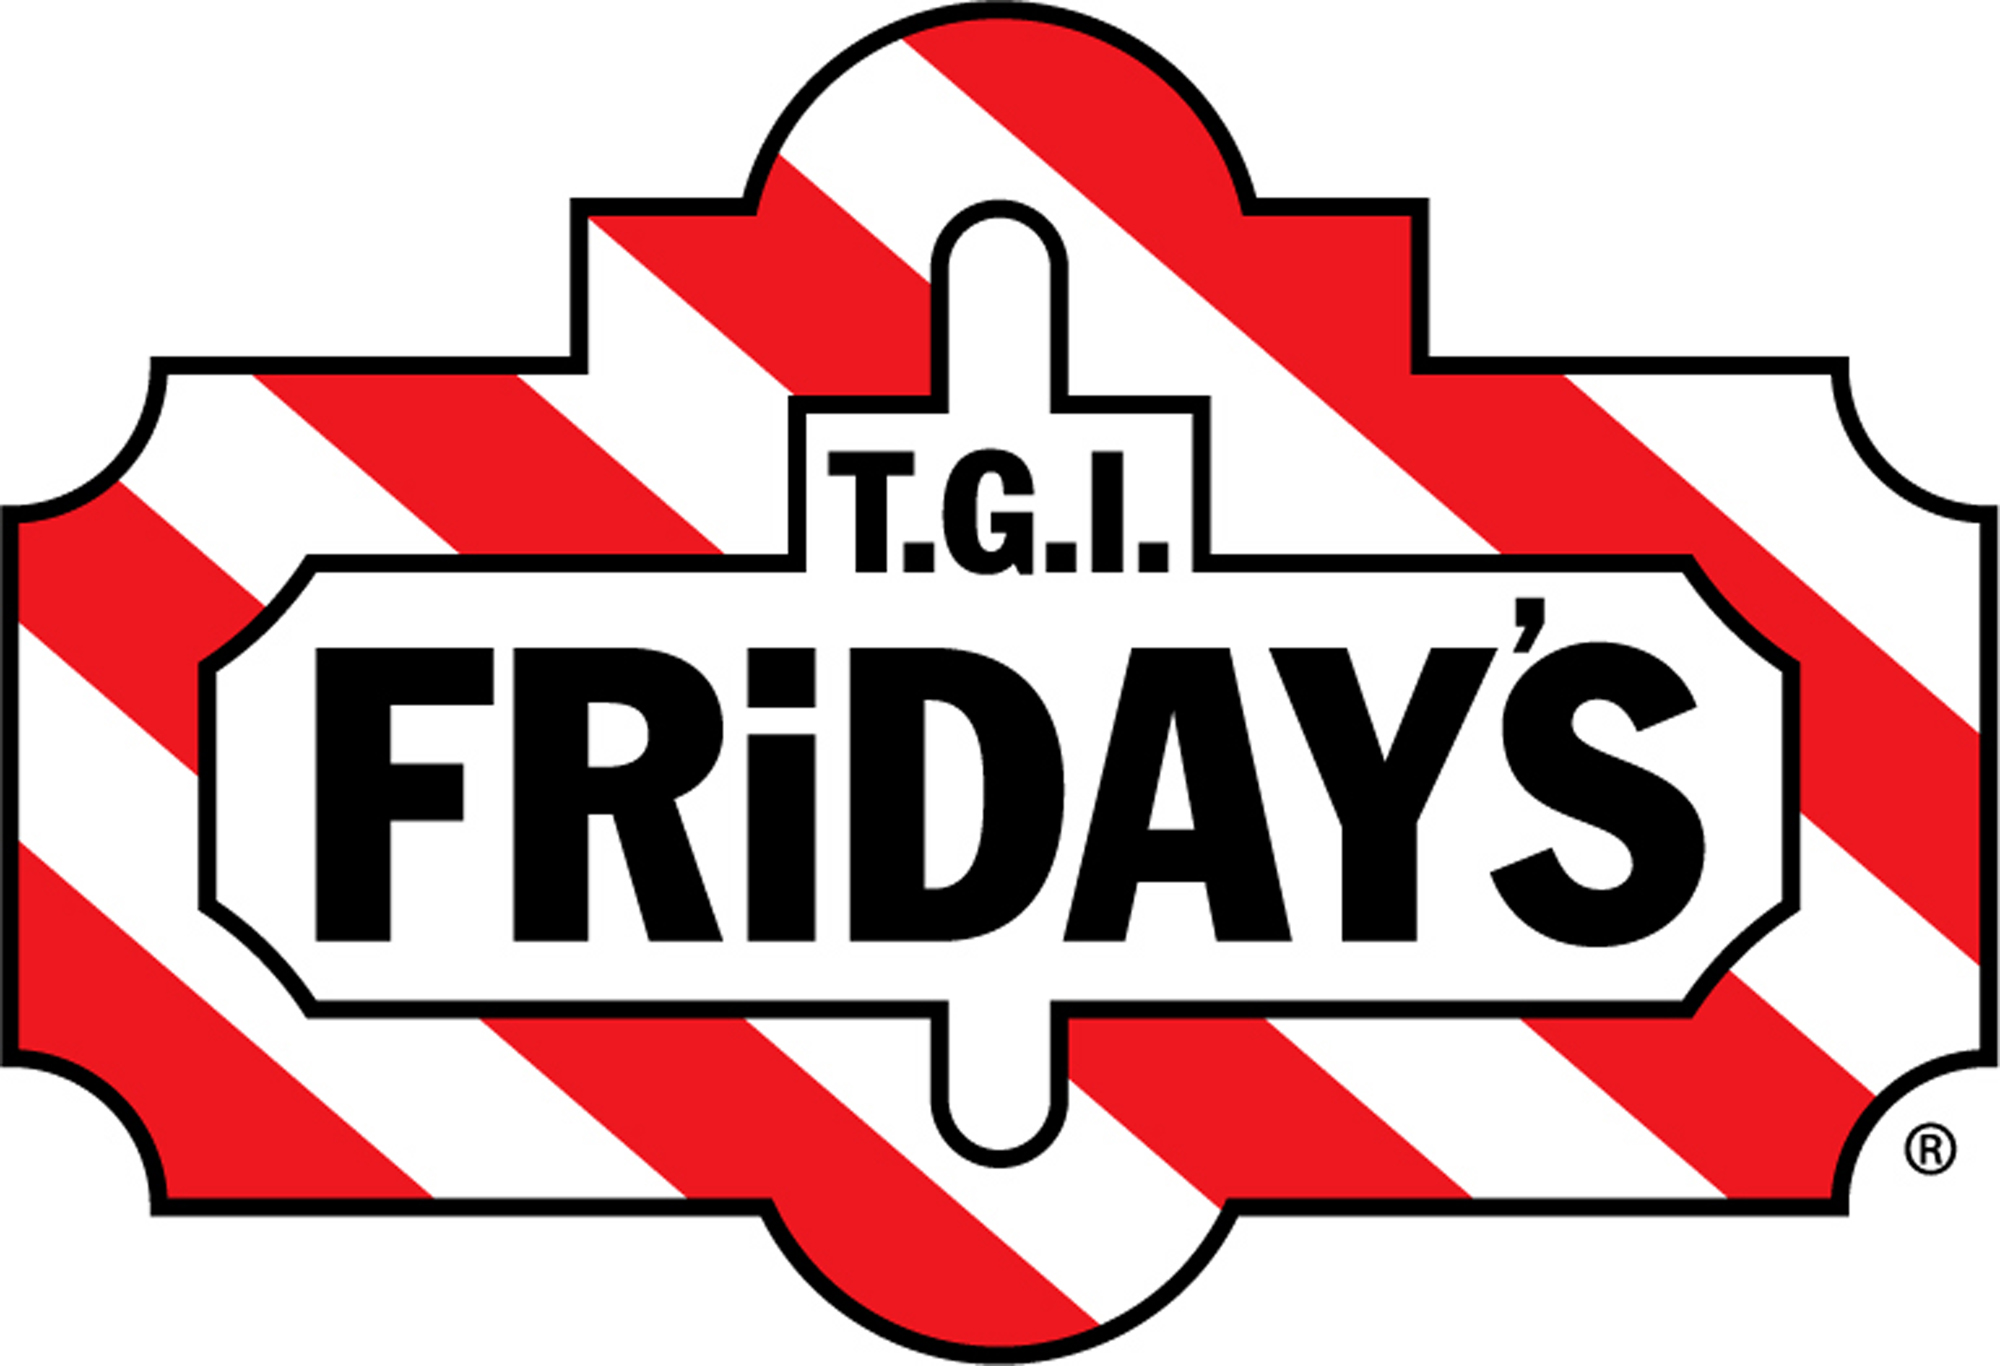 TGI Fridays is a franchising operation, with franchisees owning most of the outlets. The largest franchisee is The Briad Group in New Jersey. [14] An international franchisee was Whitbread PLC, the owner of T.G.I. Fridays UK.